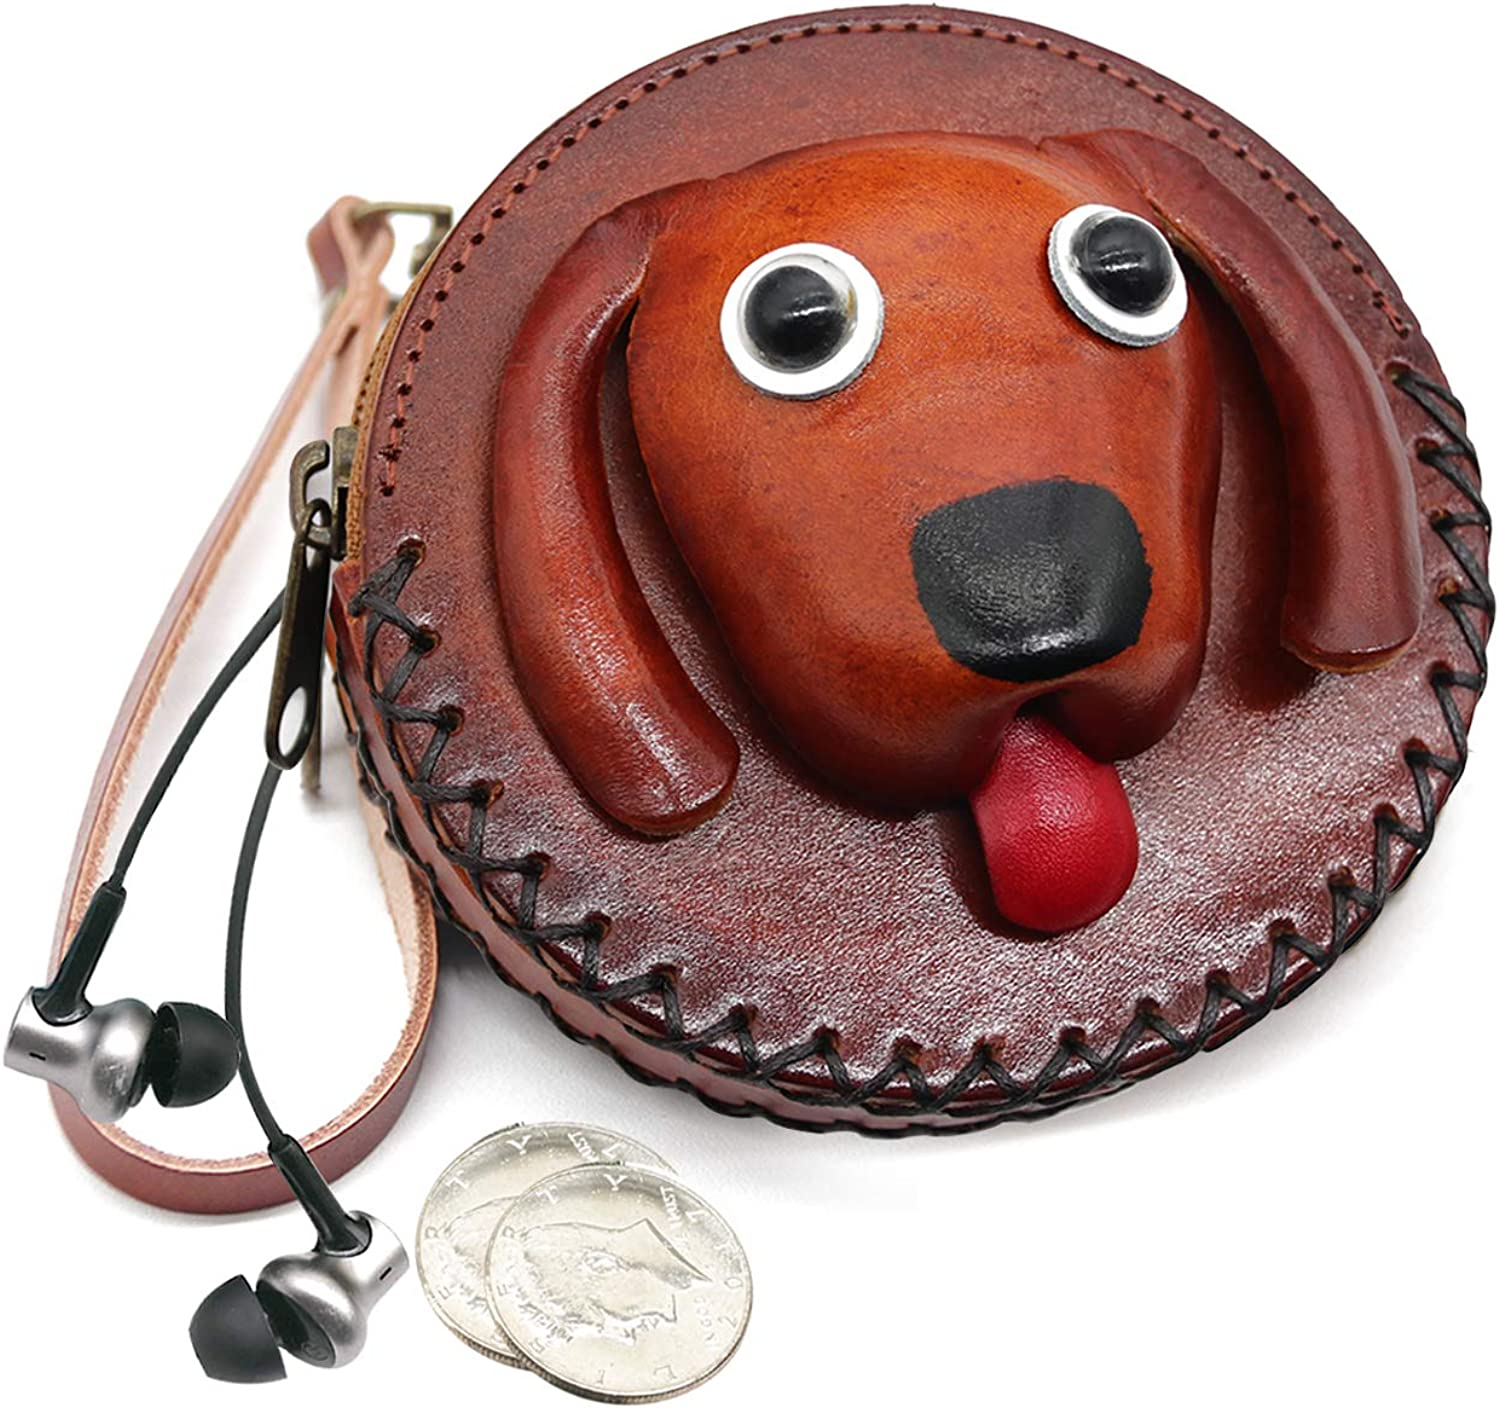 Coin Purse for Women Animal Pouches Leather Handcrafted Round Change Purse with Strap Keyring